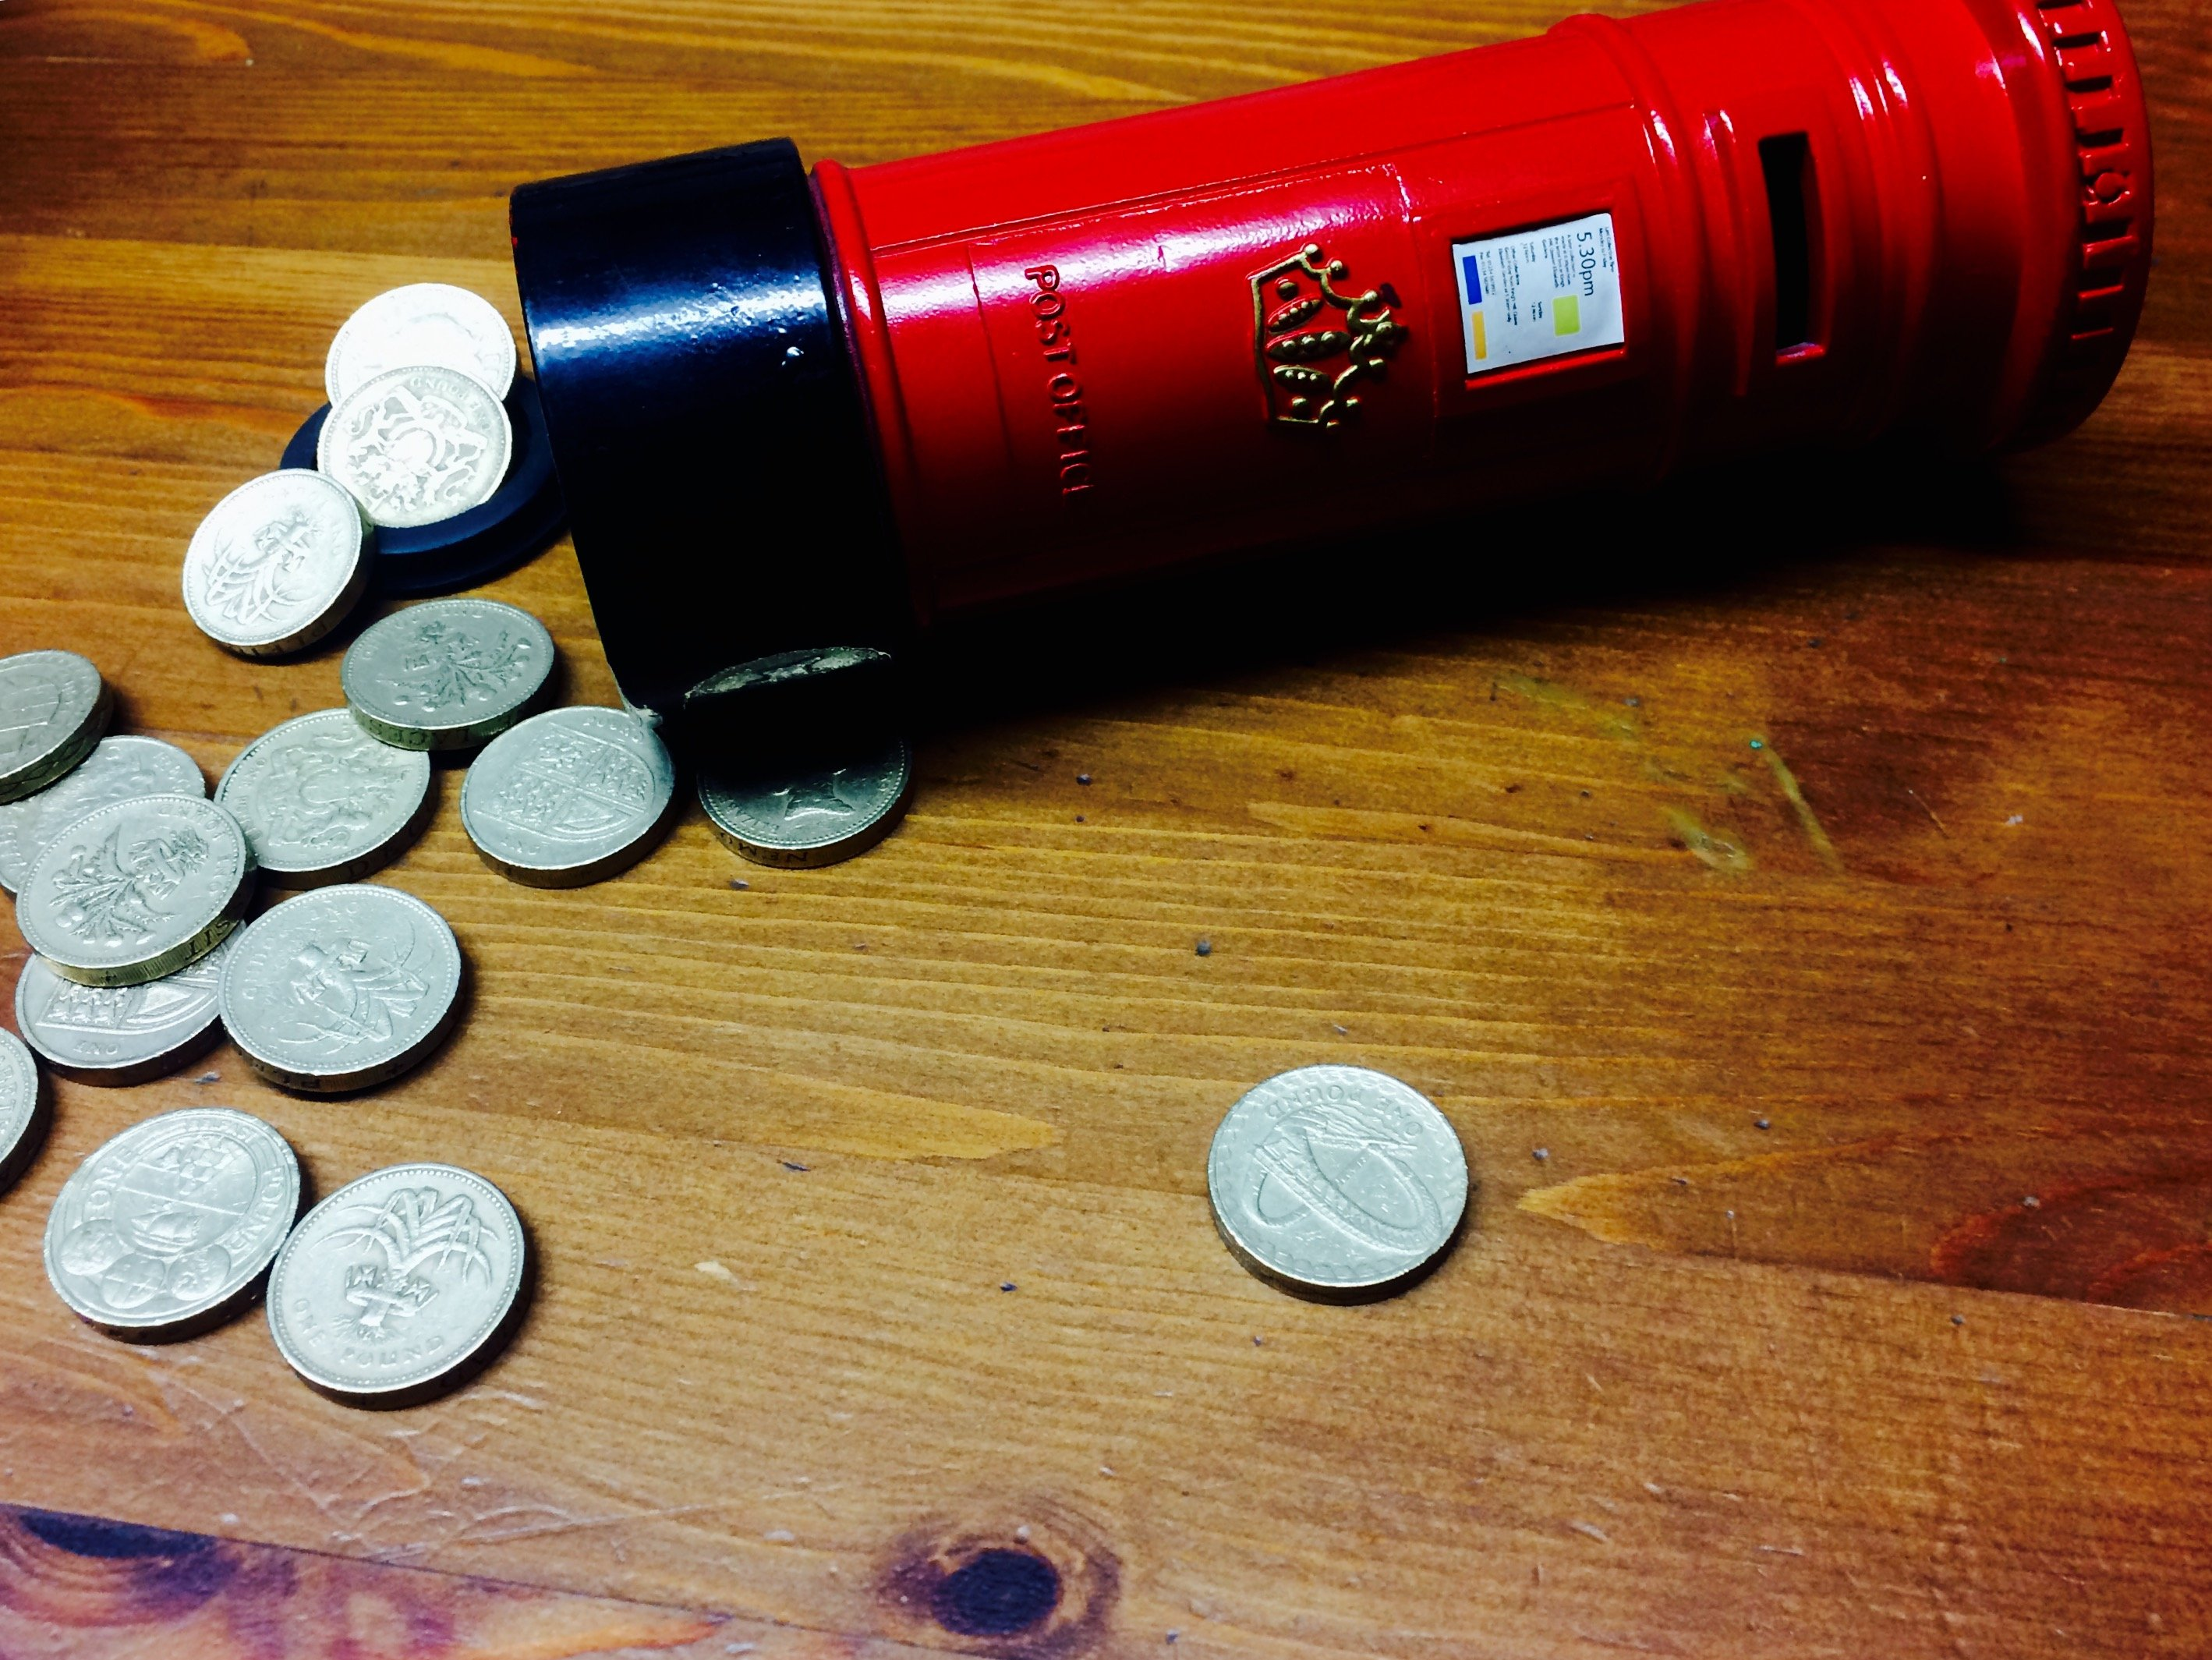 How to Make Money… fast: Time's running out for the £1 coin clear ...